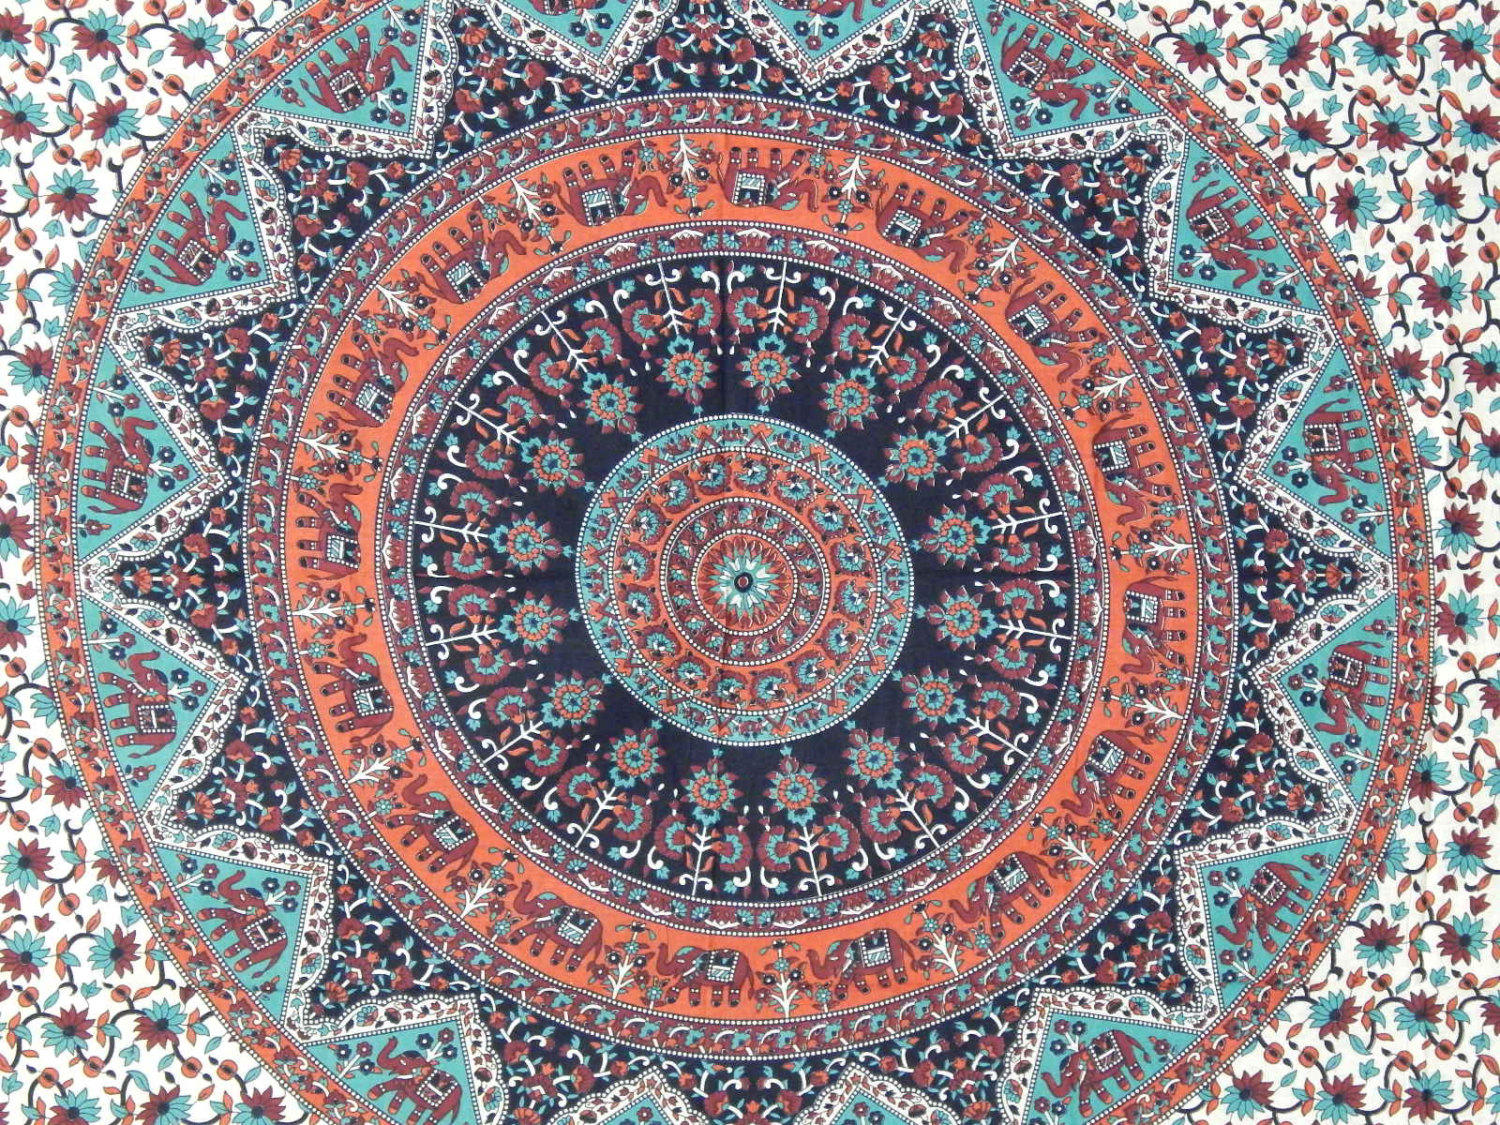 Zodiac Home Decor Mandala Tapestries Tapestry Wall Hanging From